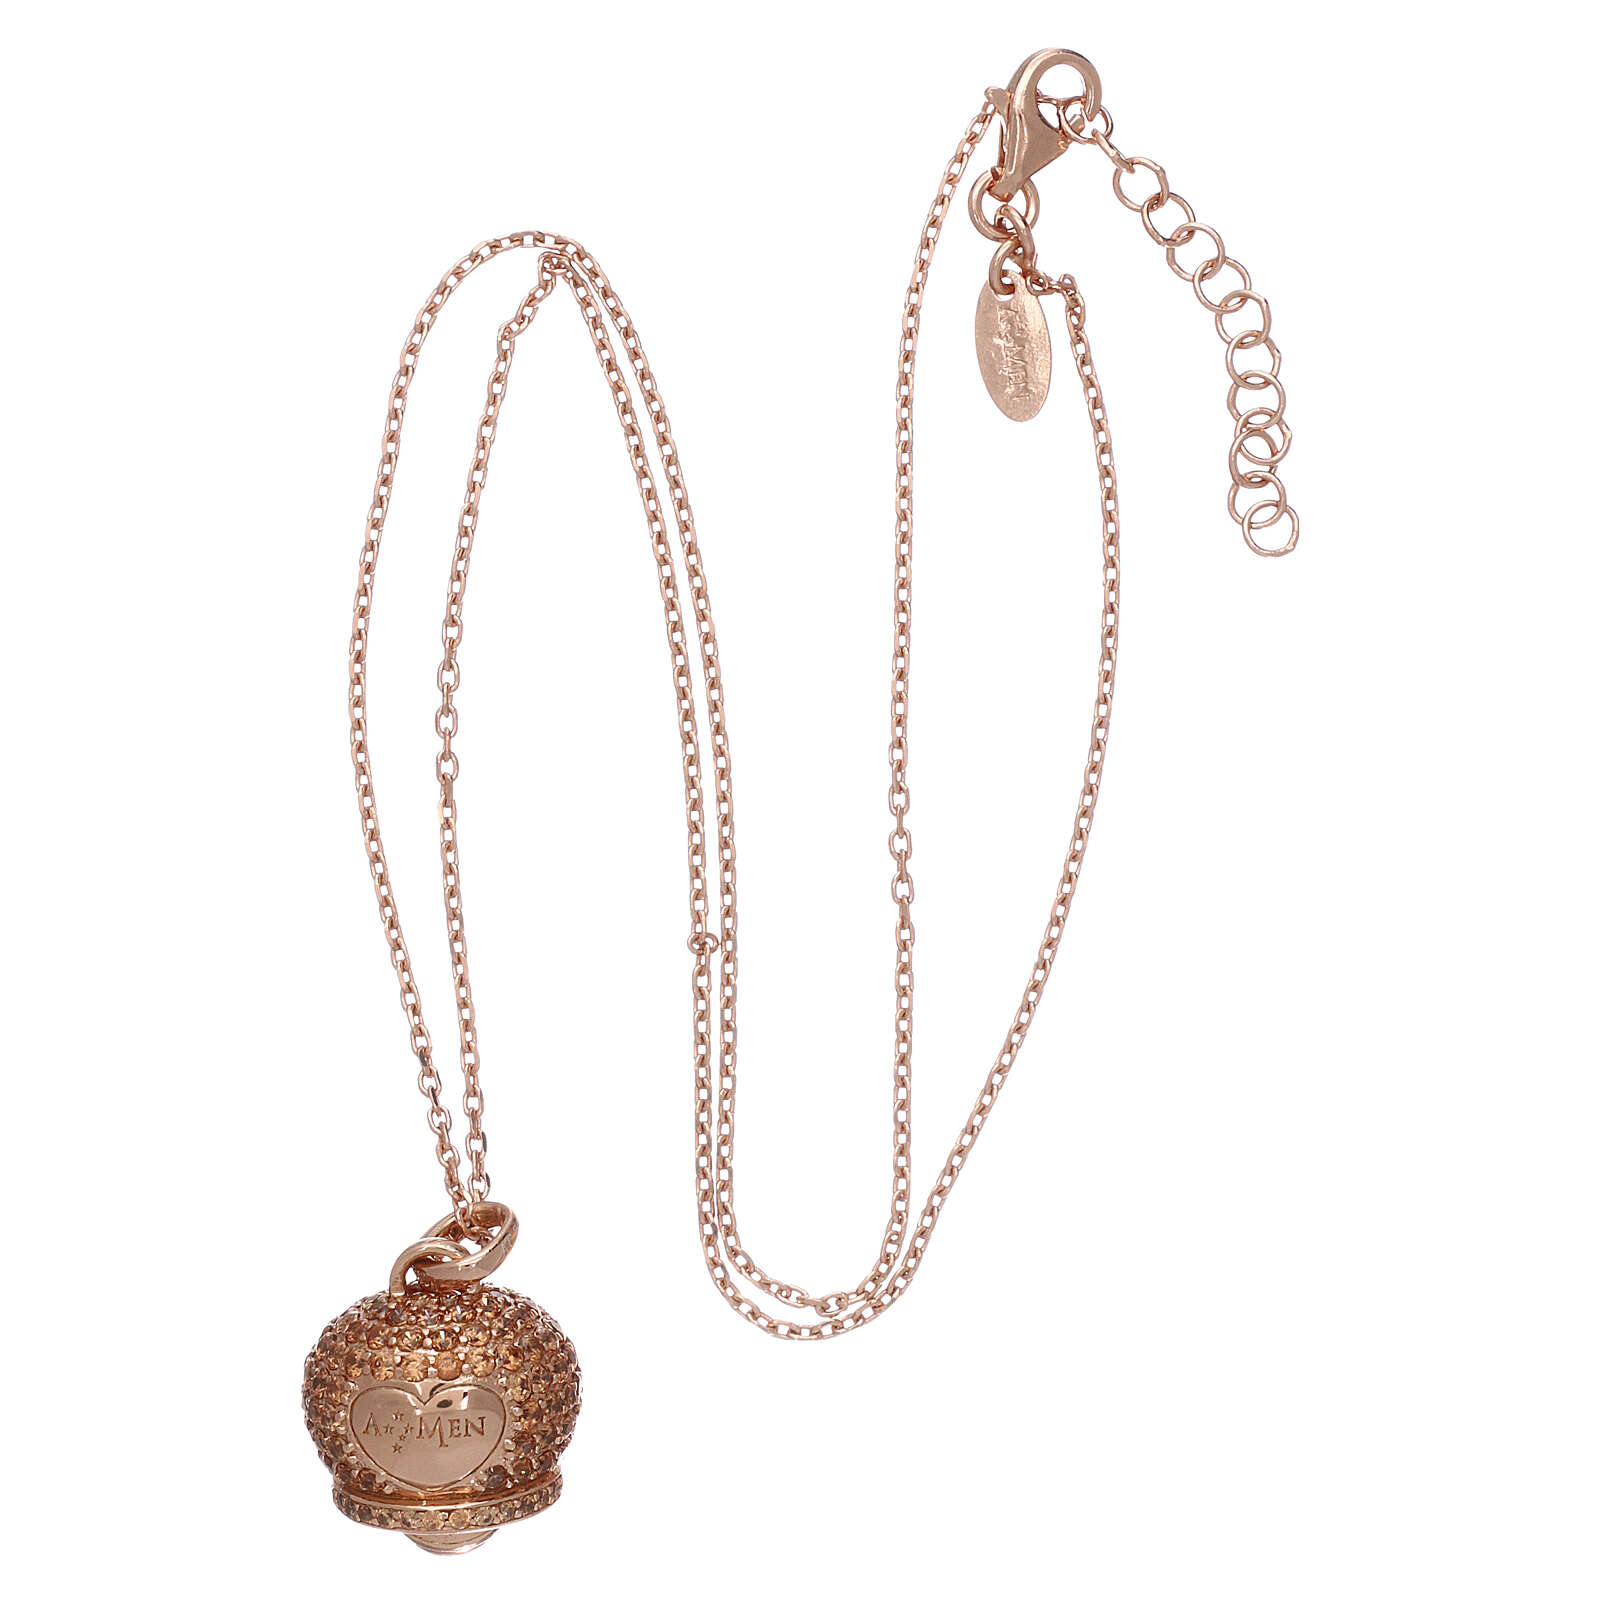 AMEN Necklace in 925 silver rosé finish bell shaped pendant with zircons 4